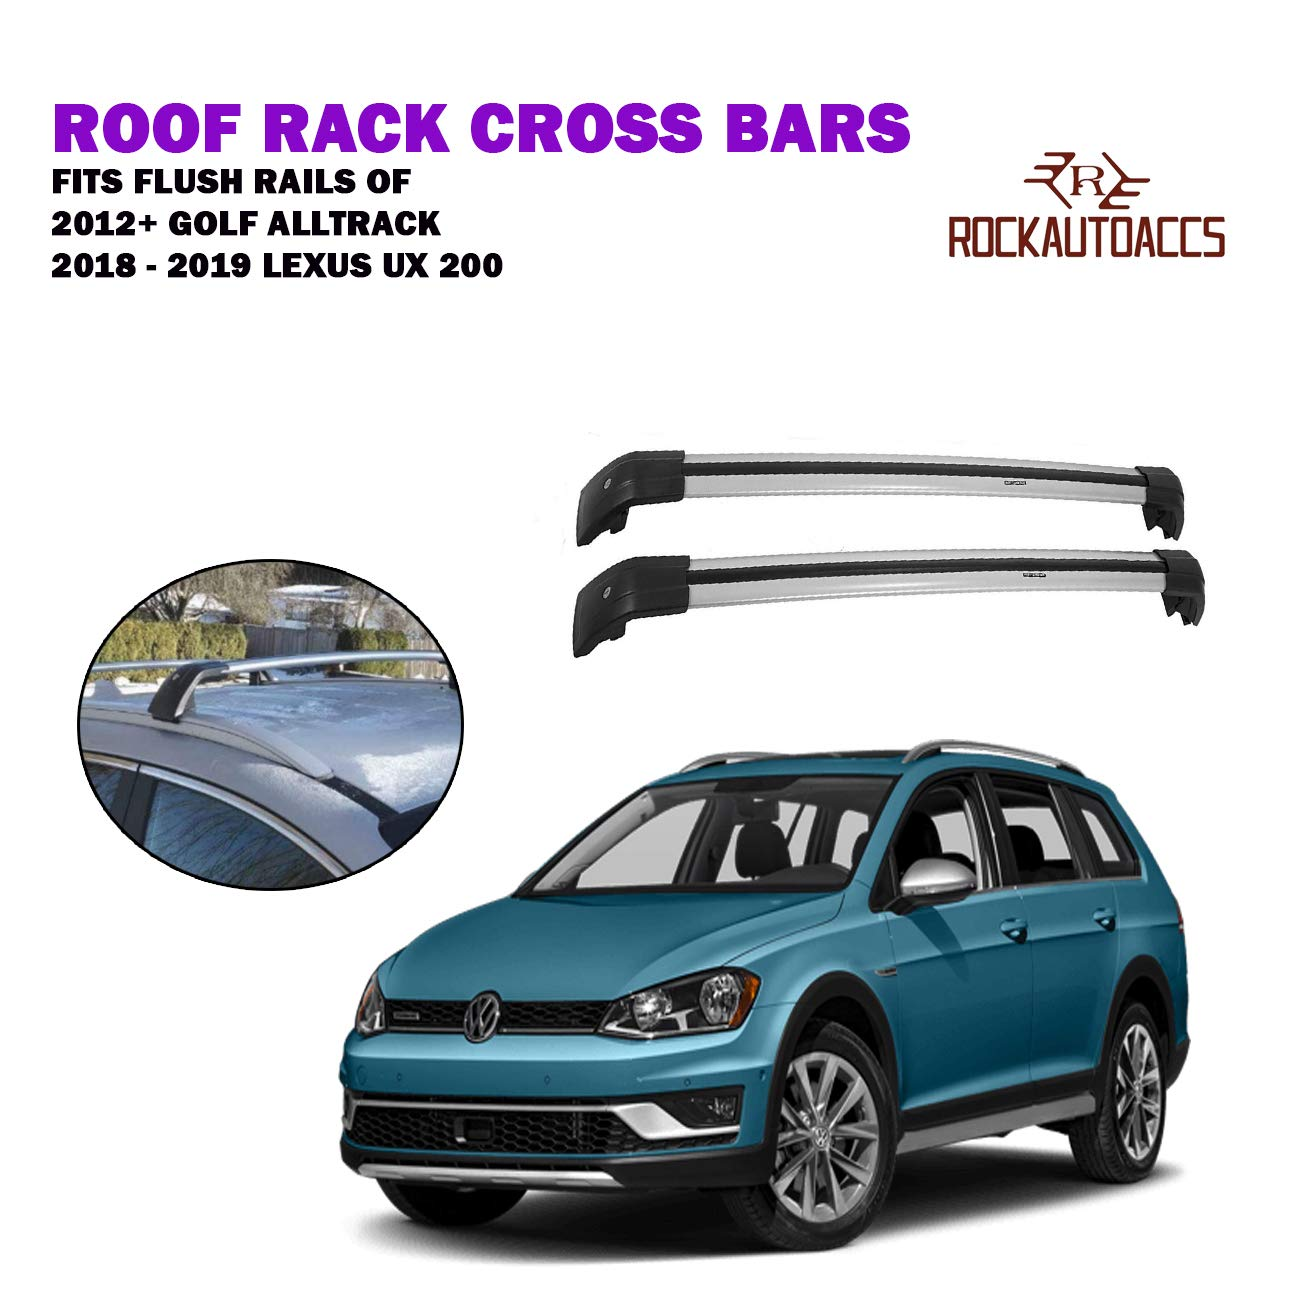 ROKIOTOEX Extendable Universal Shark Aluminum Alloy Roof Rack Crossbars for Outer Grooved Roof Rack Flush Rails SGCB9586 Silver and Black